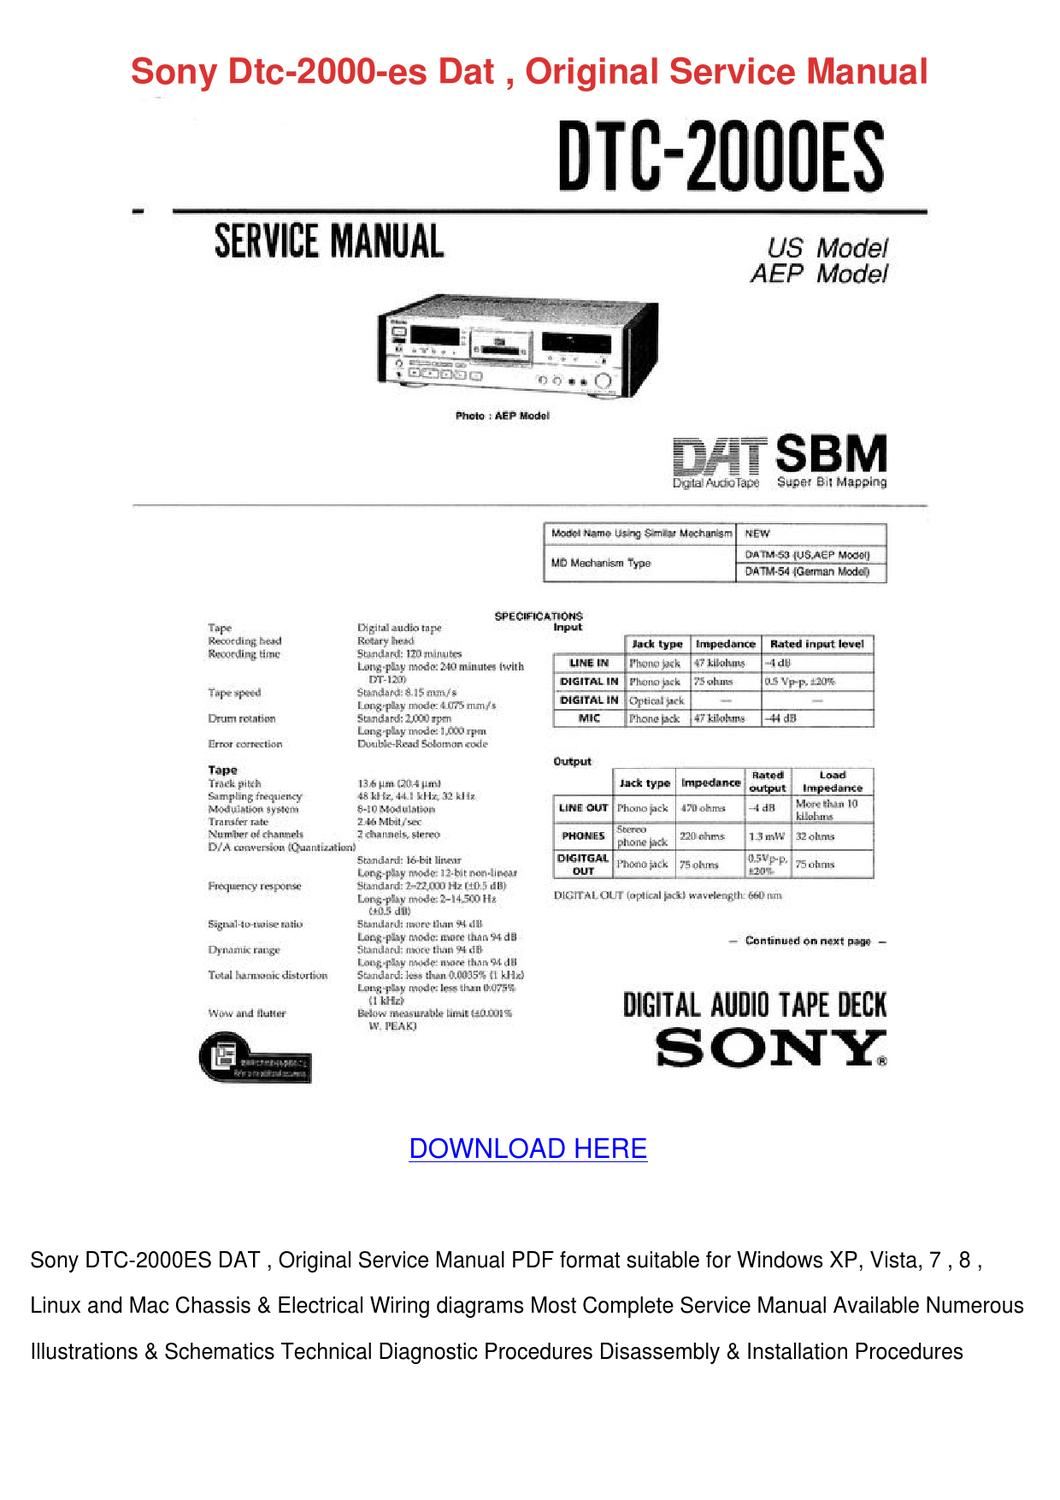 Sony Dtc 2000 Es Dat Original Service Manual by AlexandriaWilber ...